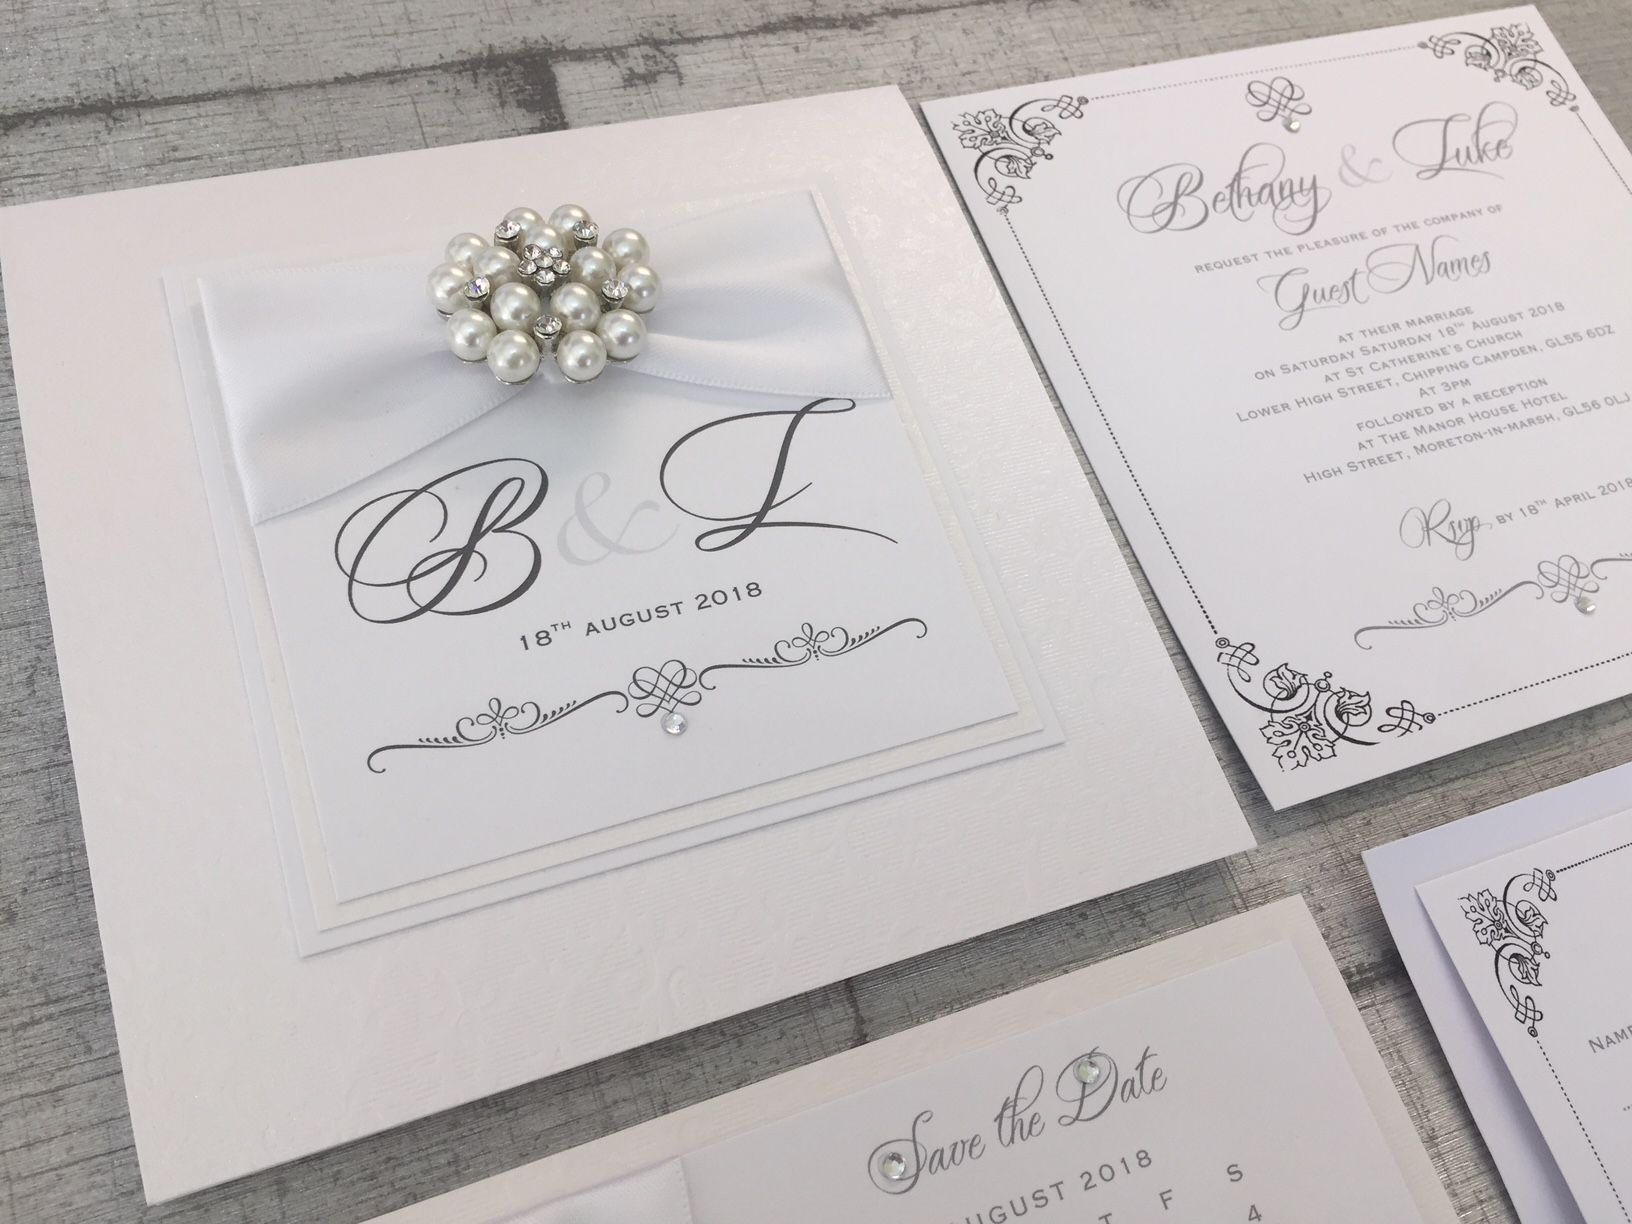 Monogram Boxed wedding invitation with white ribbon and brooch